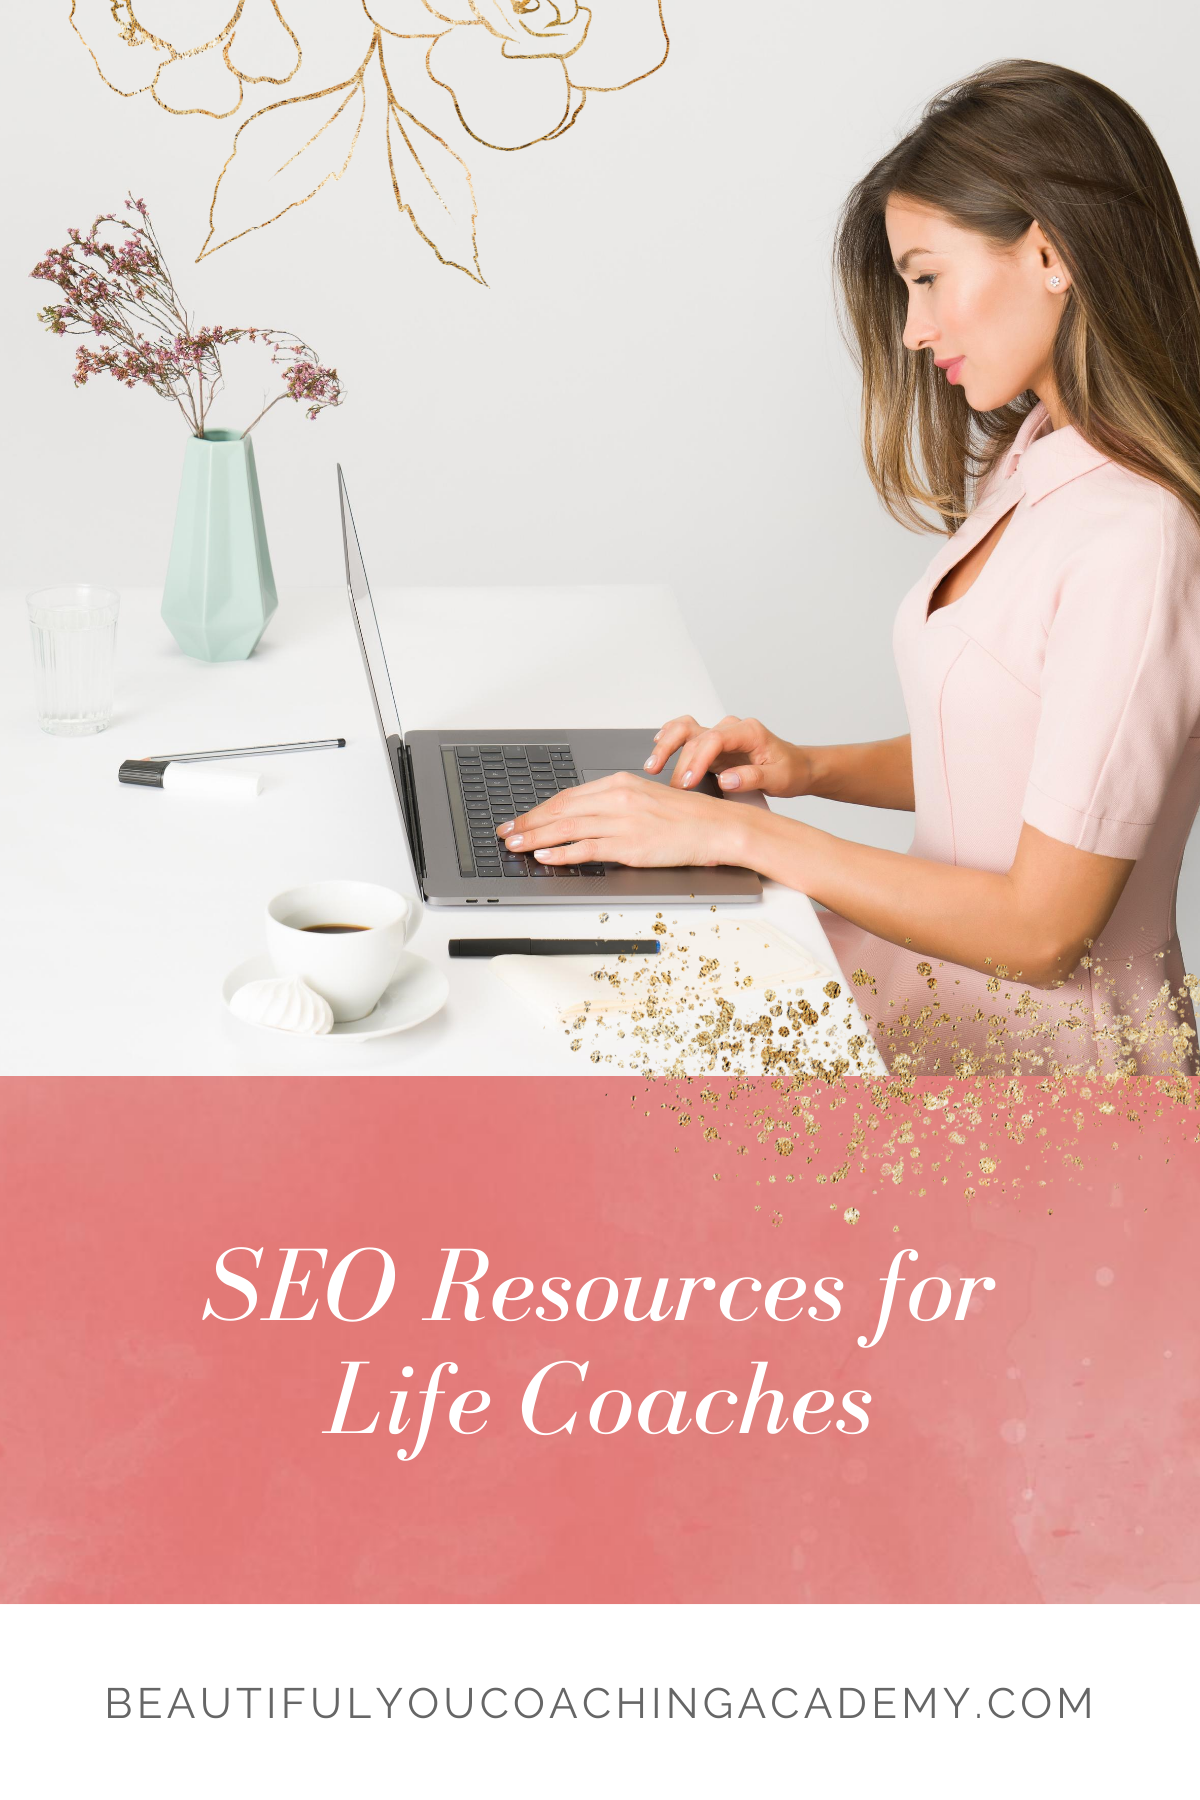 SEO Resources for Life Coaches